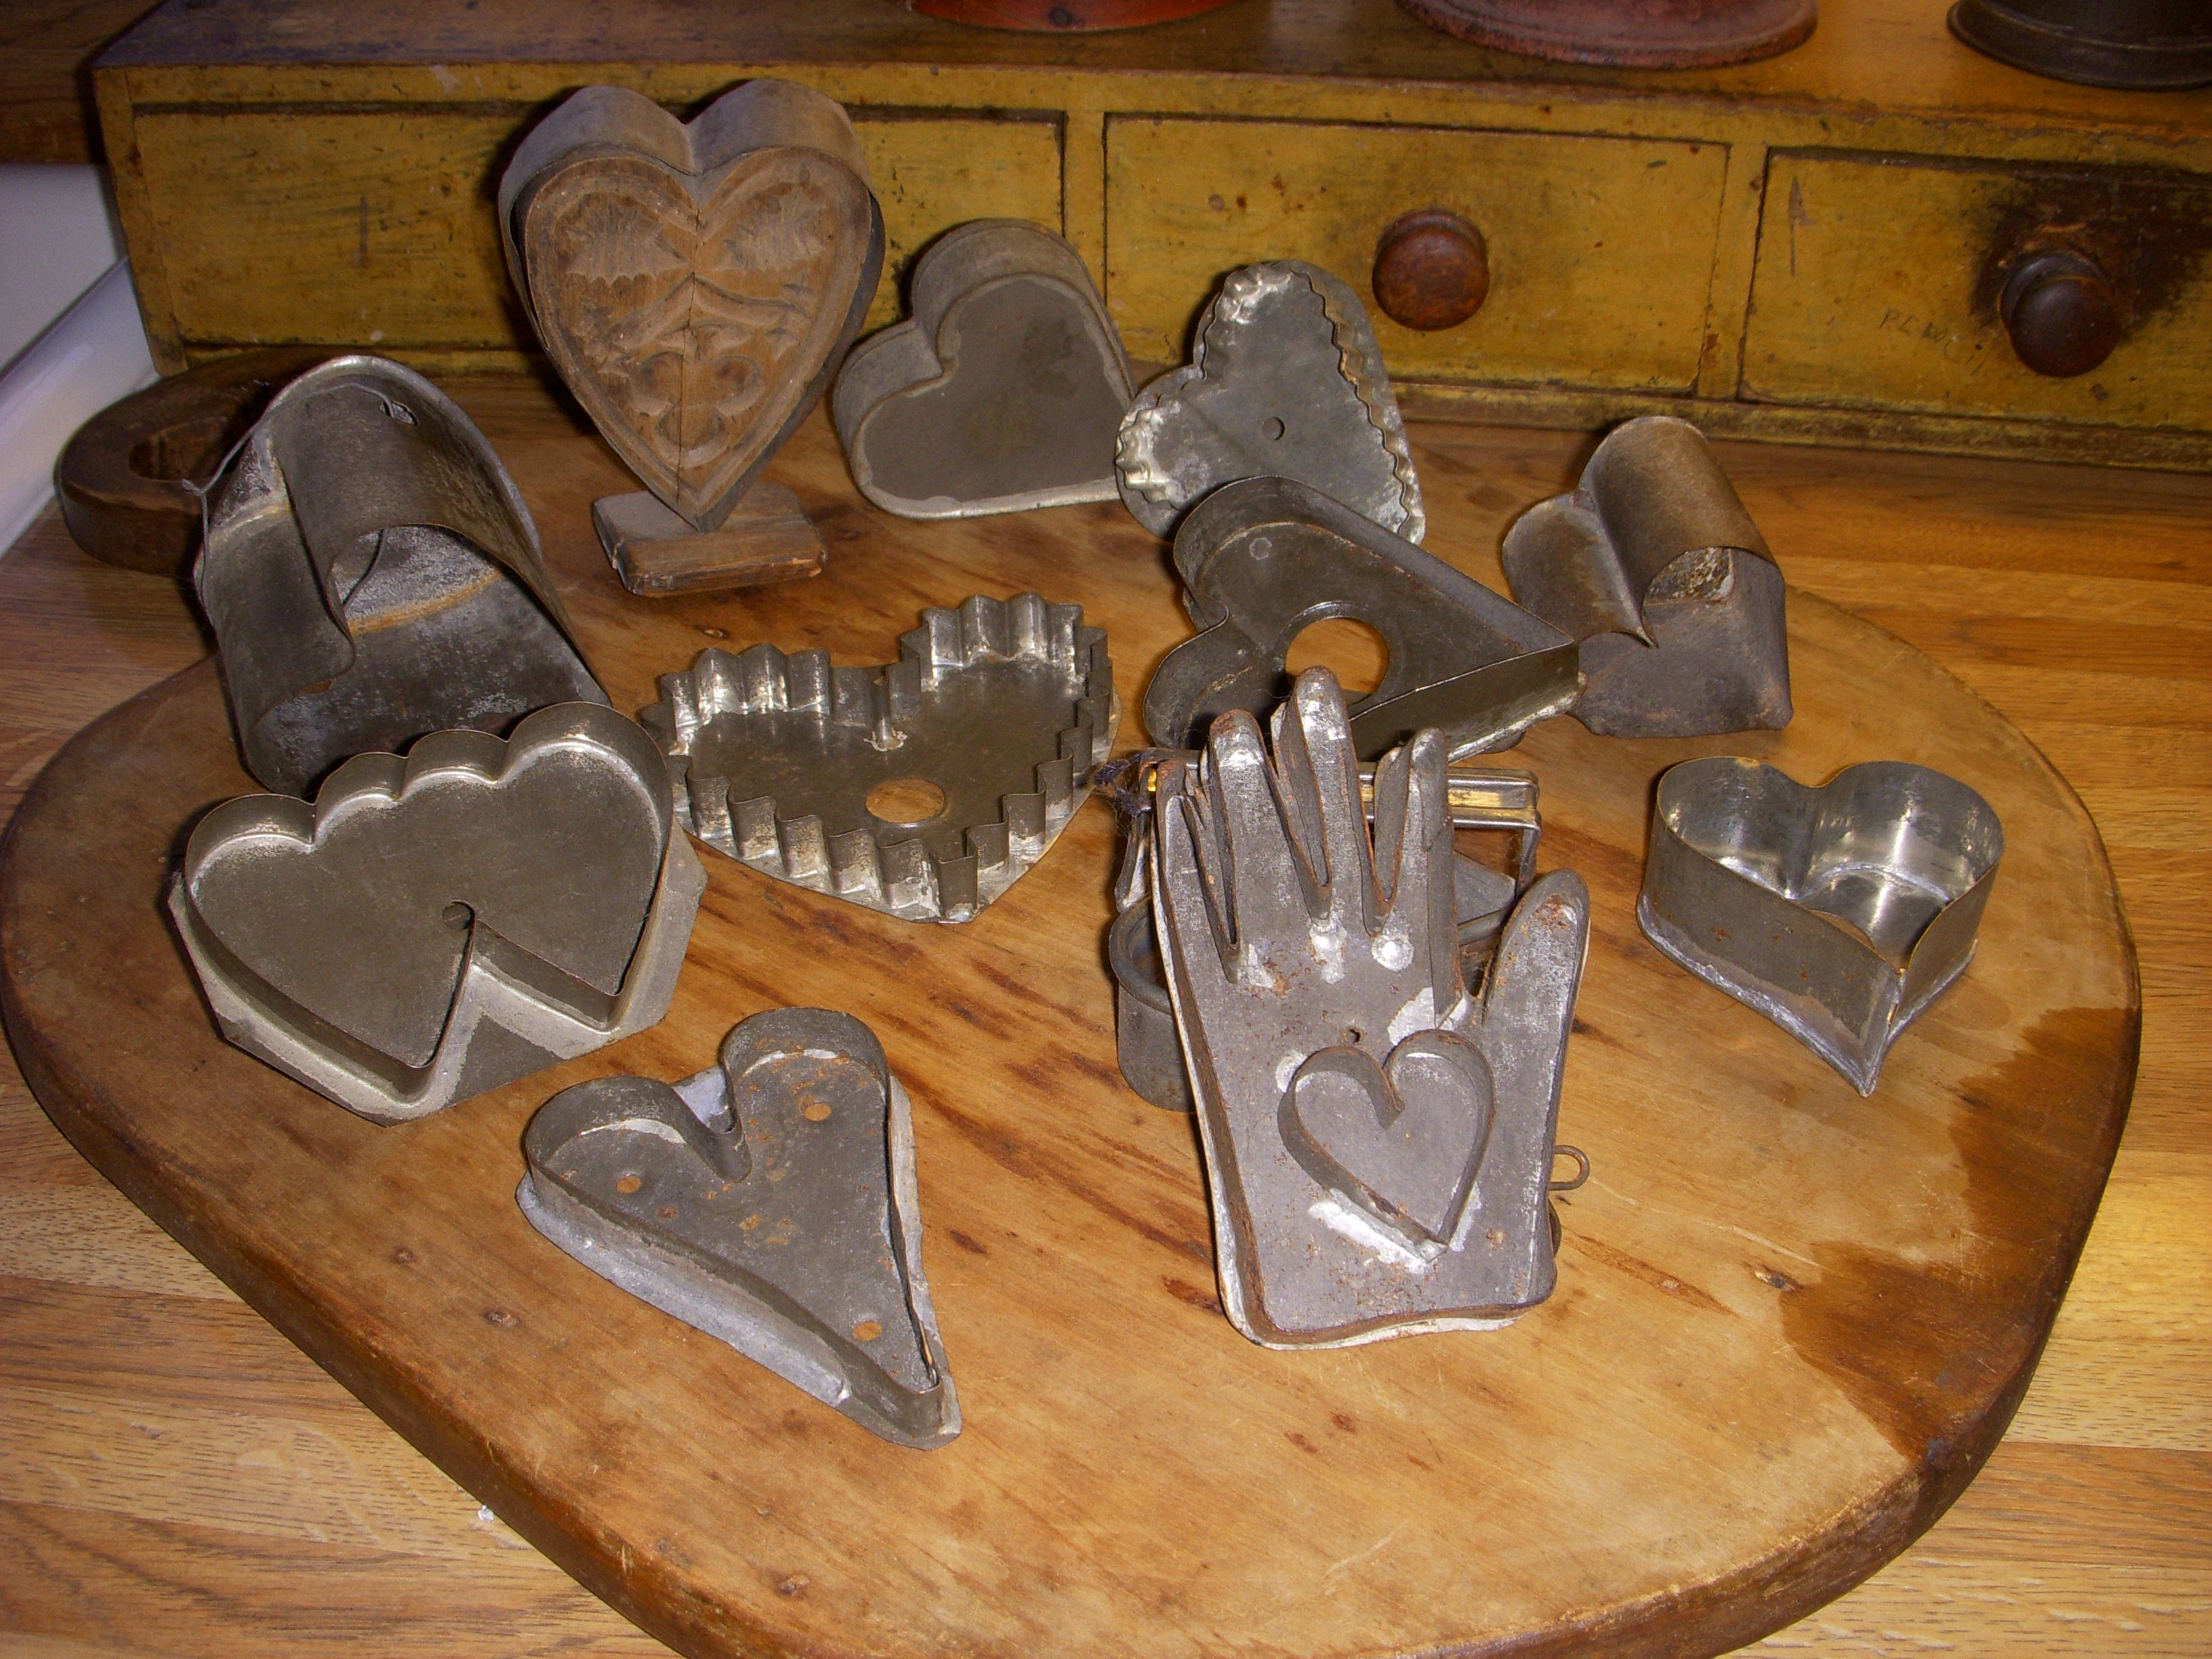 ac moore cookie cutters